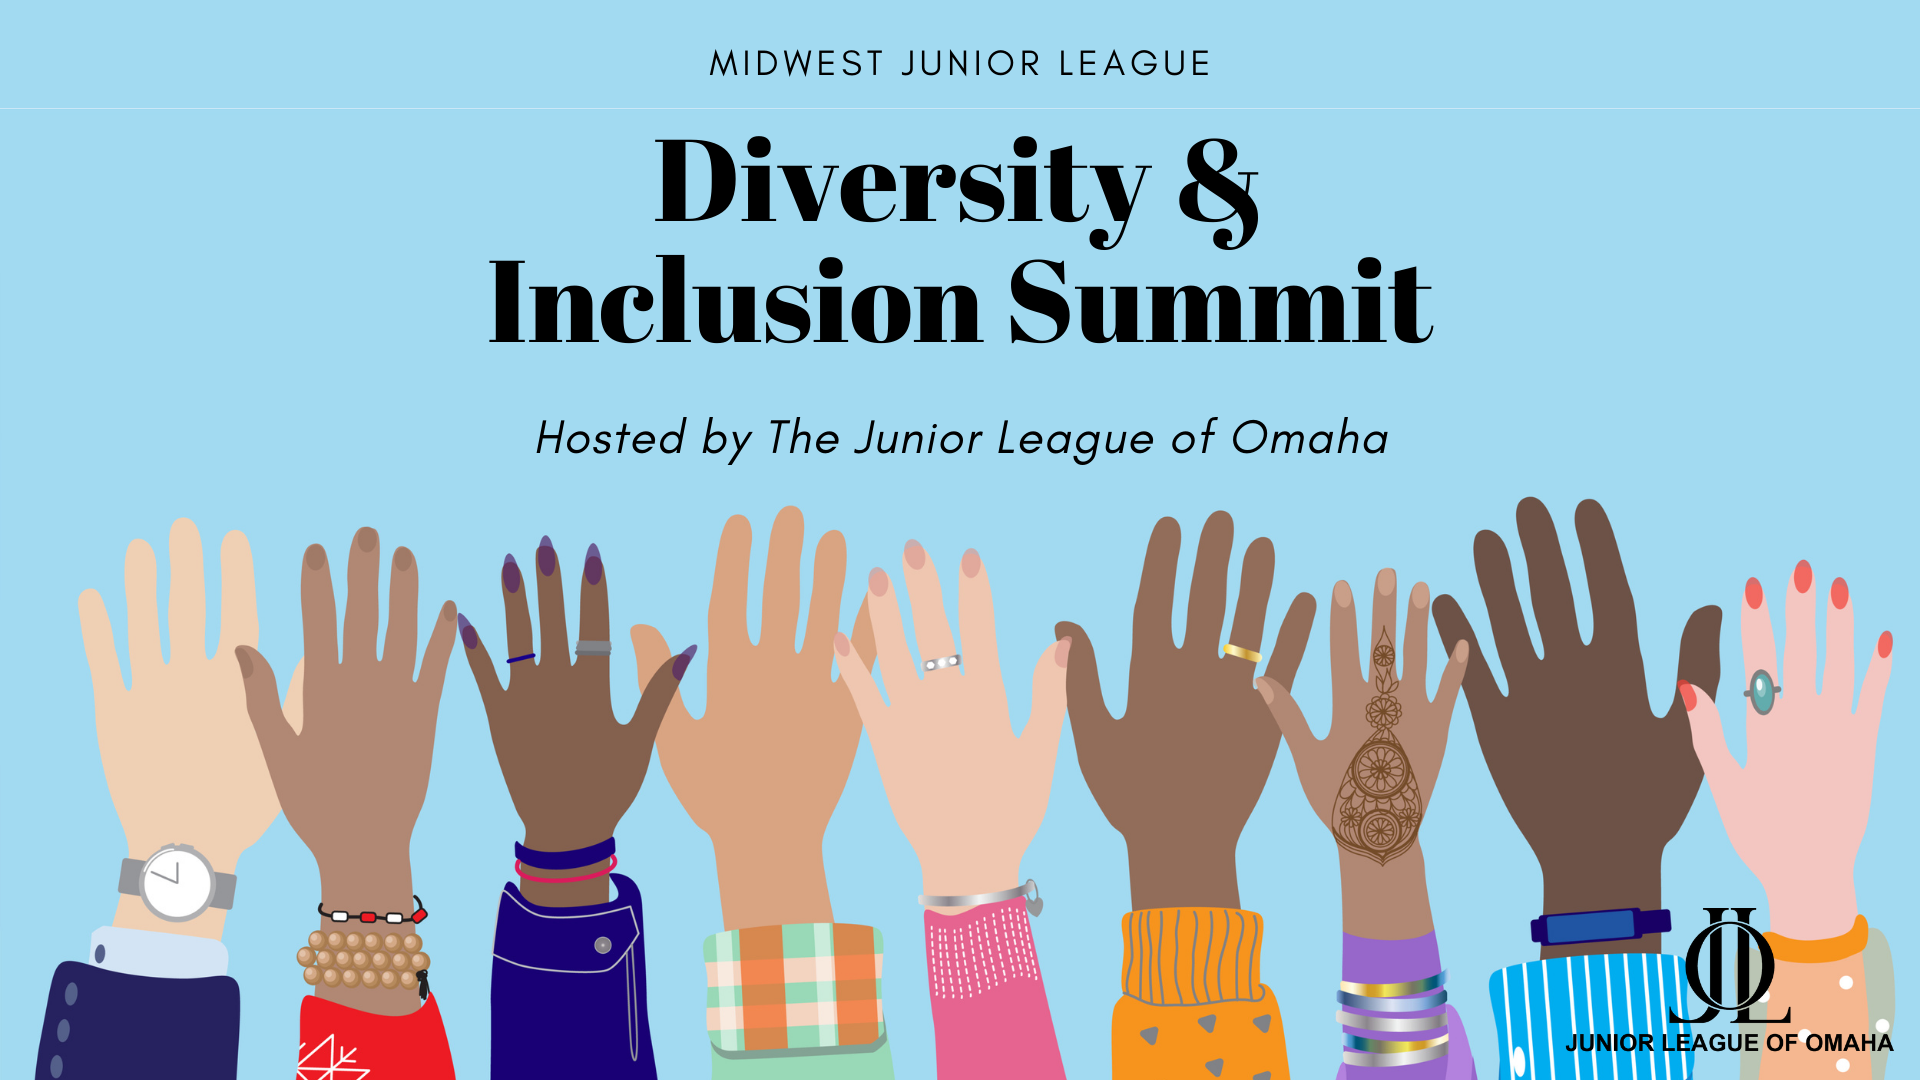 Junior League of Omaha Midwest Diversity & Inclusion Summit